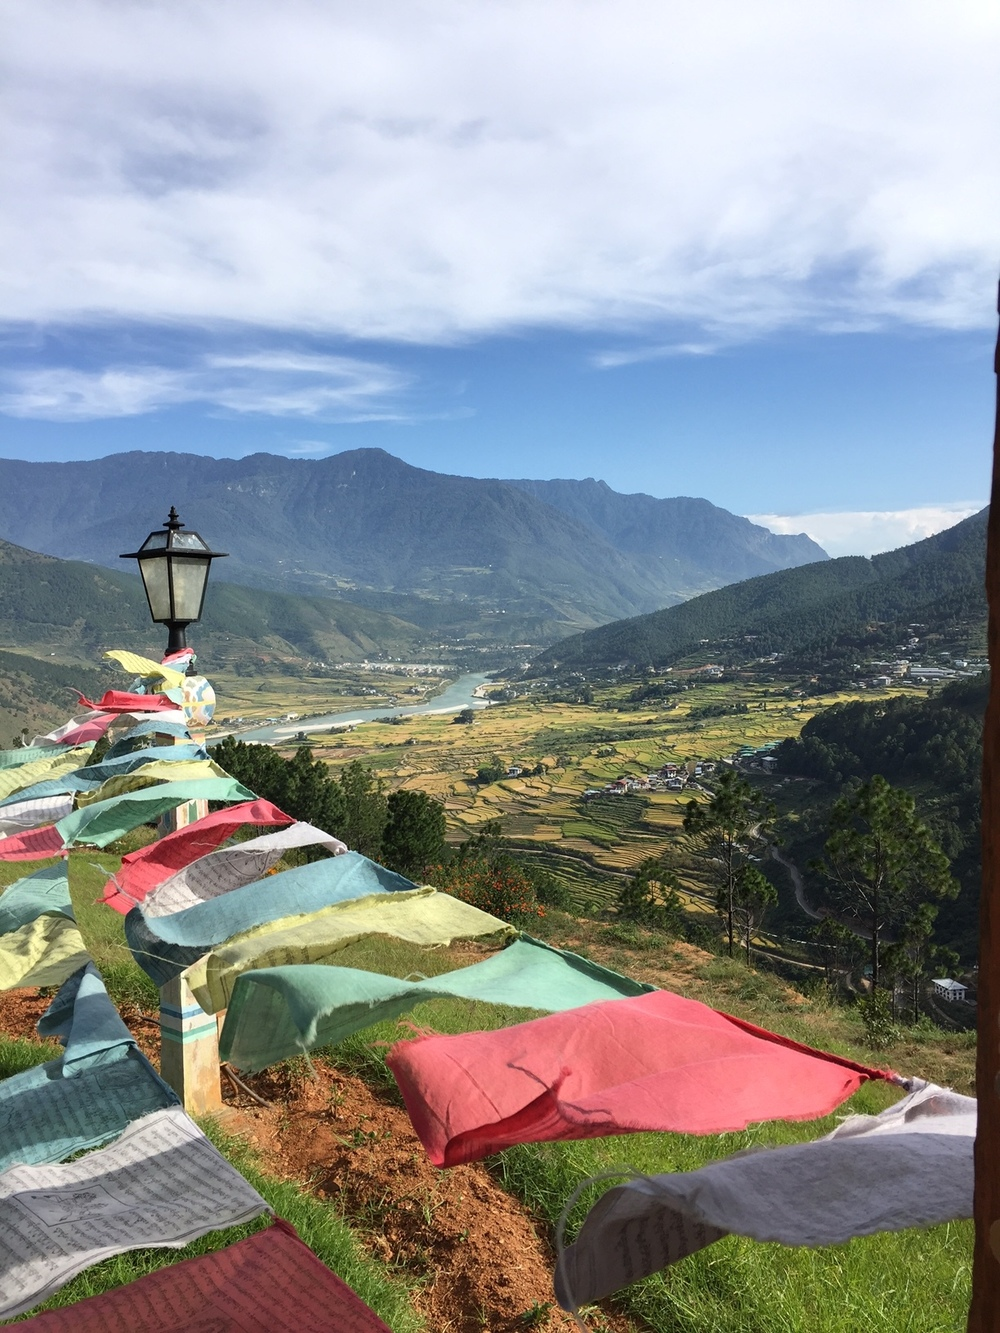 The view from the Buddhist nunnery on a mountain above Thimphu